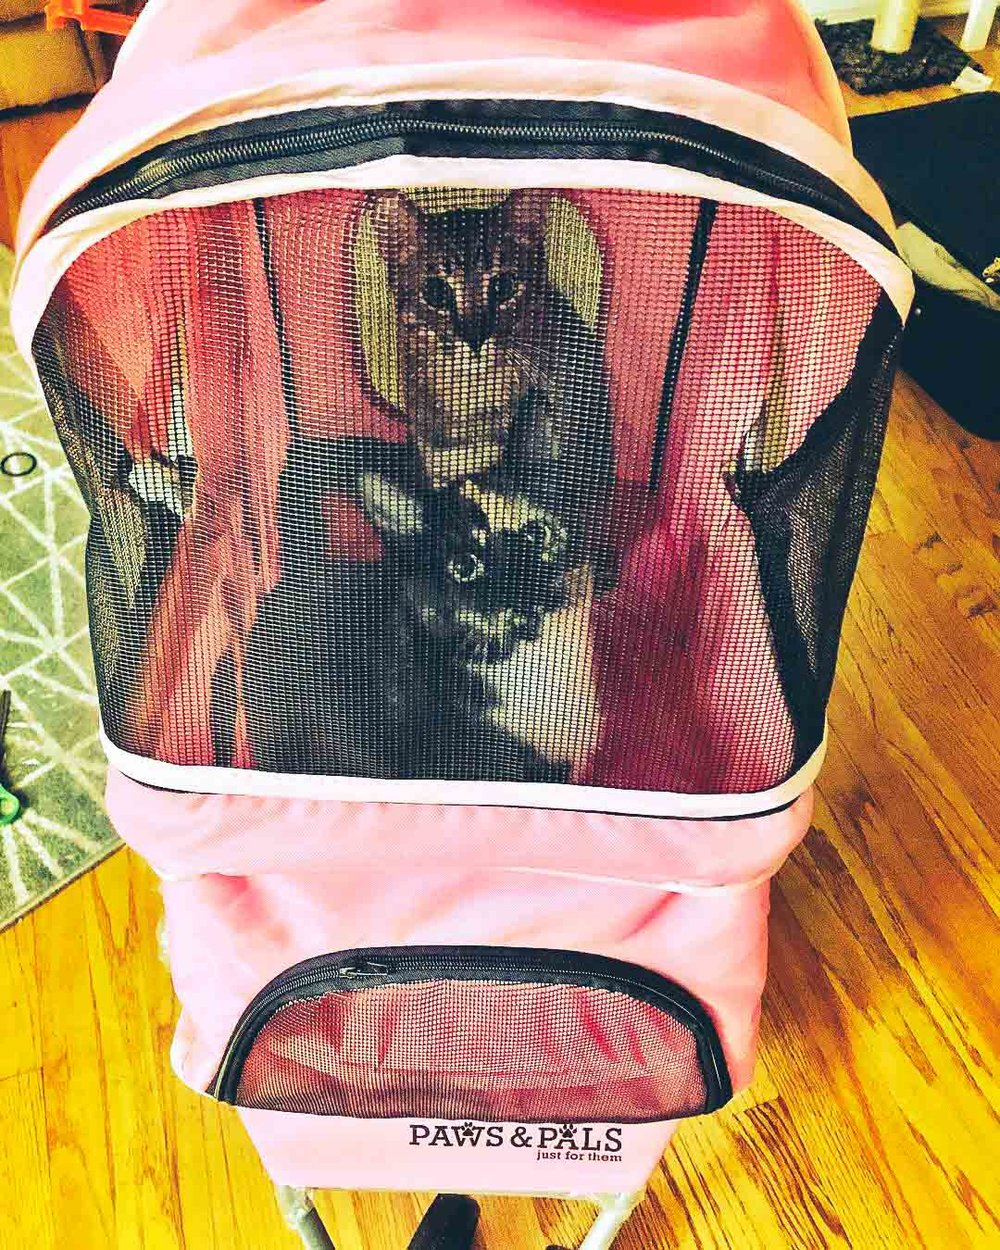 @the.hun.buns in a Paws & Pals stroller